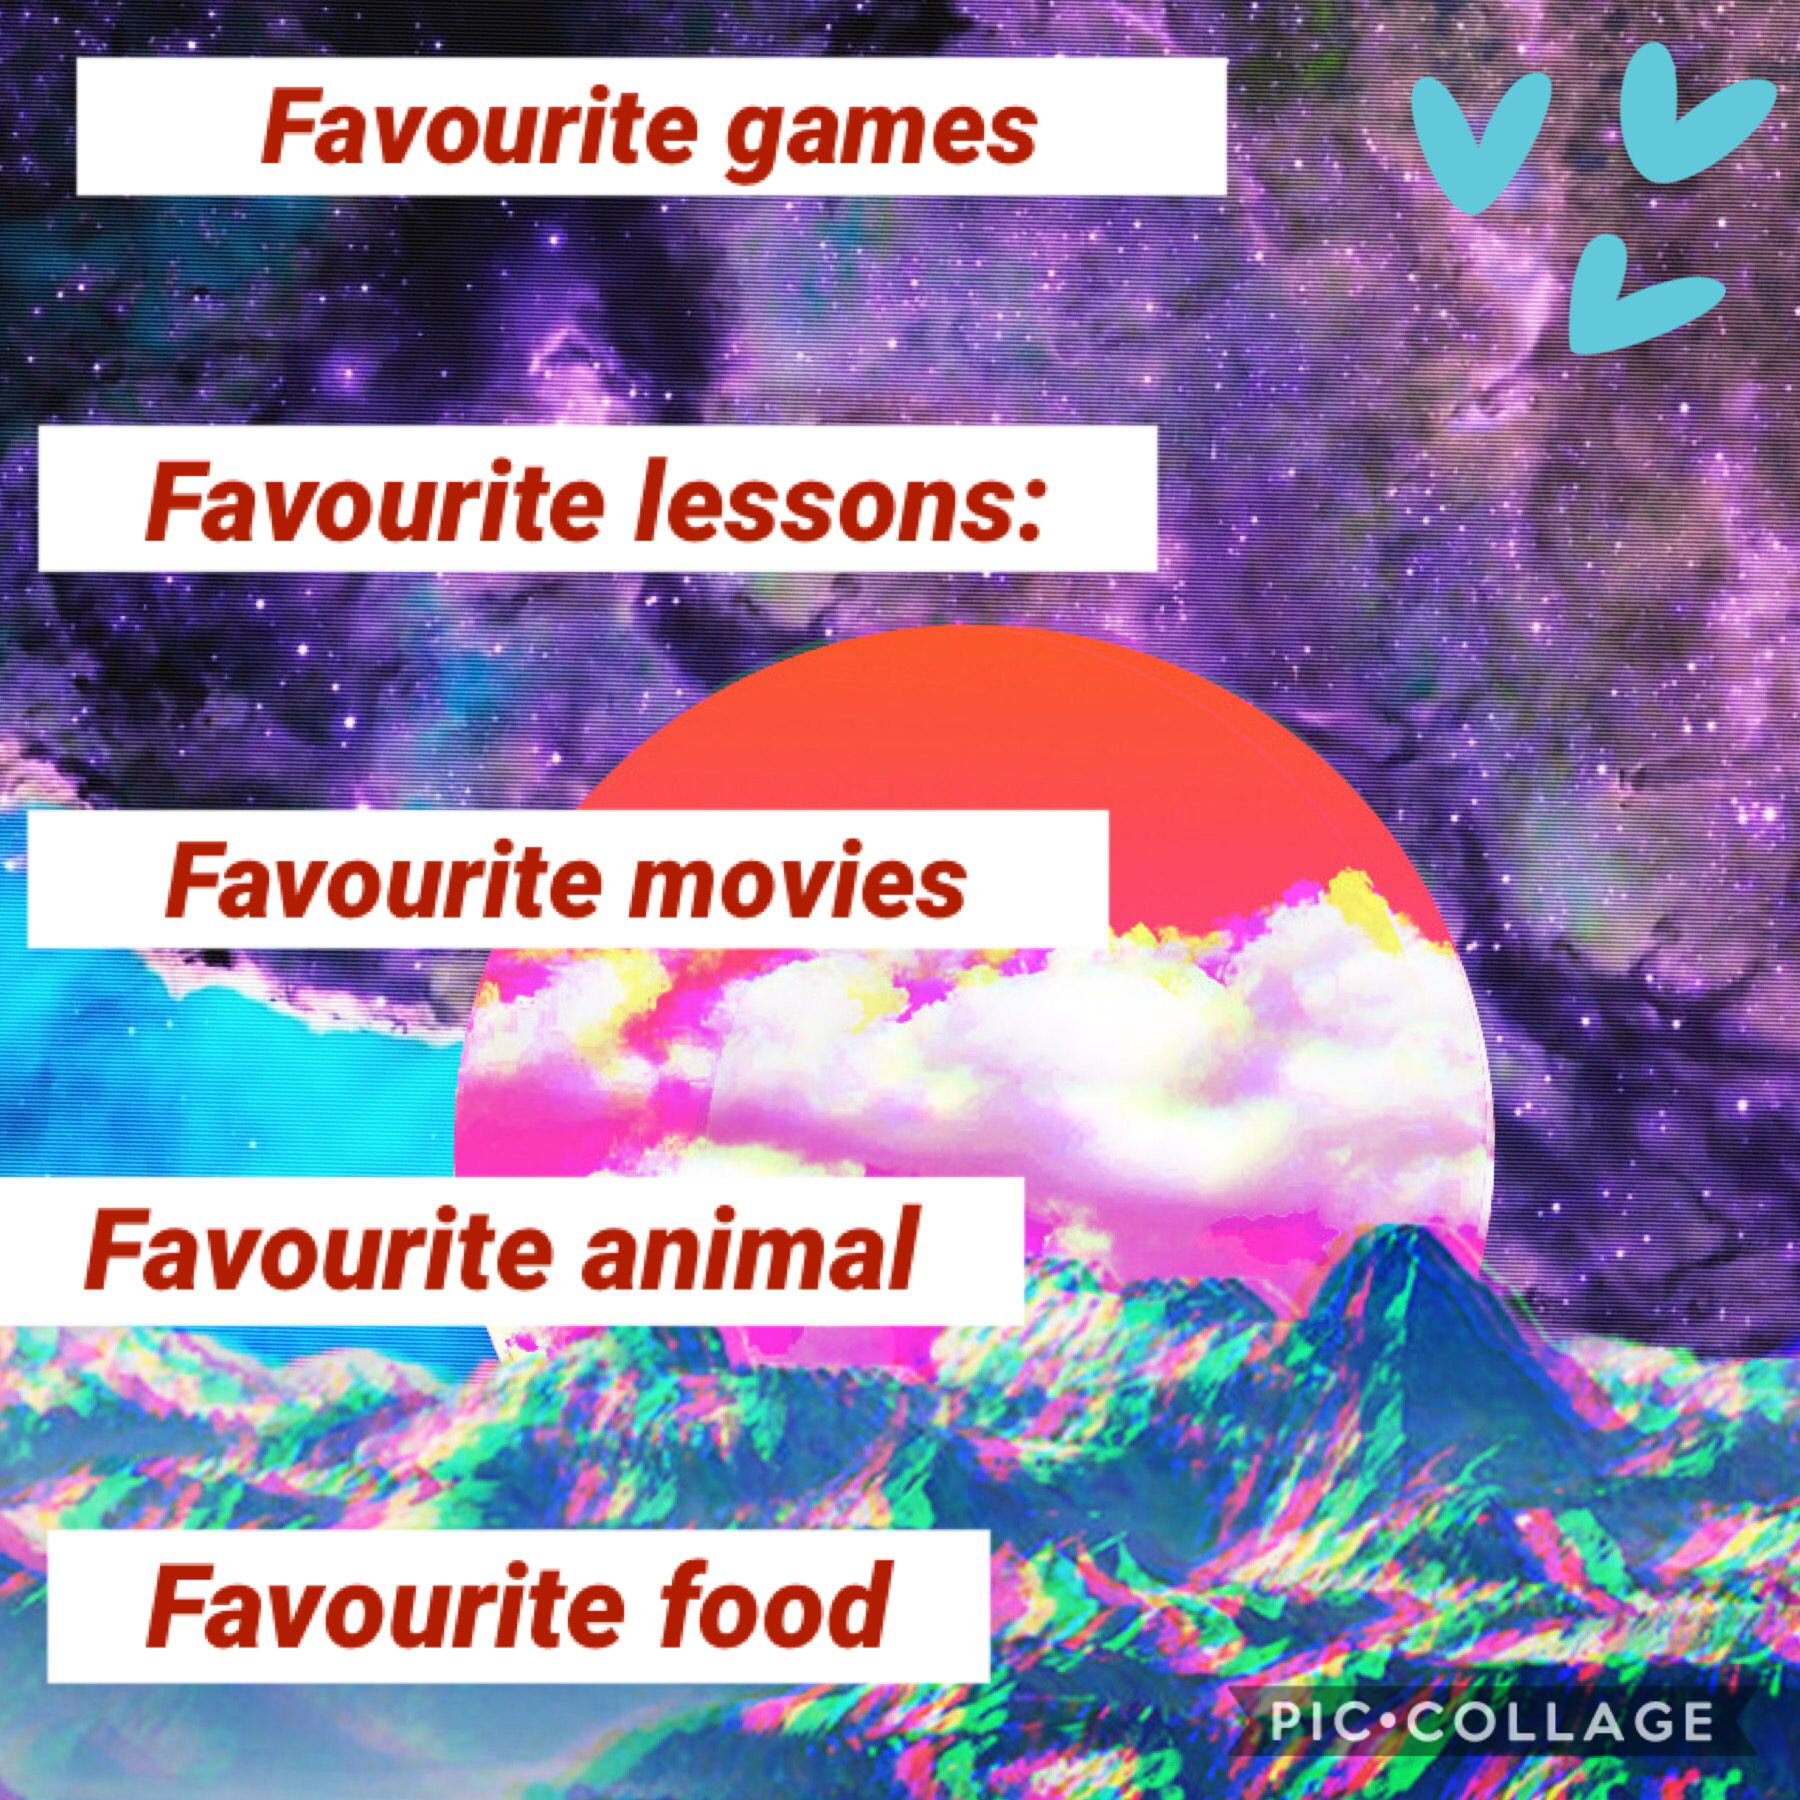 What's ur favourite things from this? :)